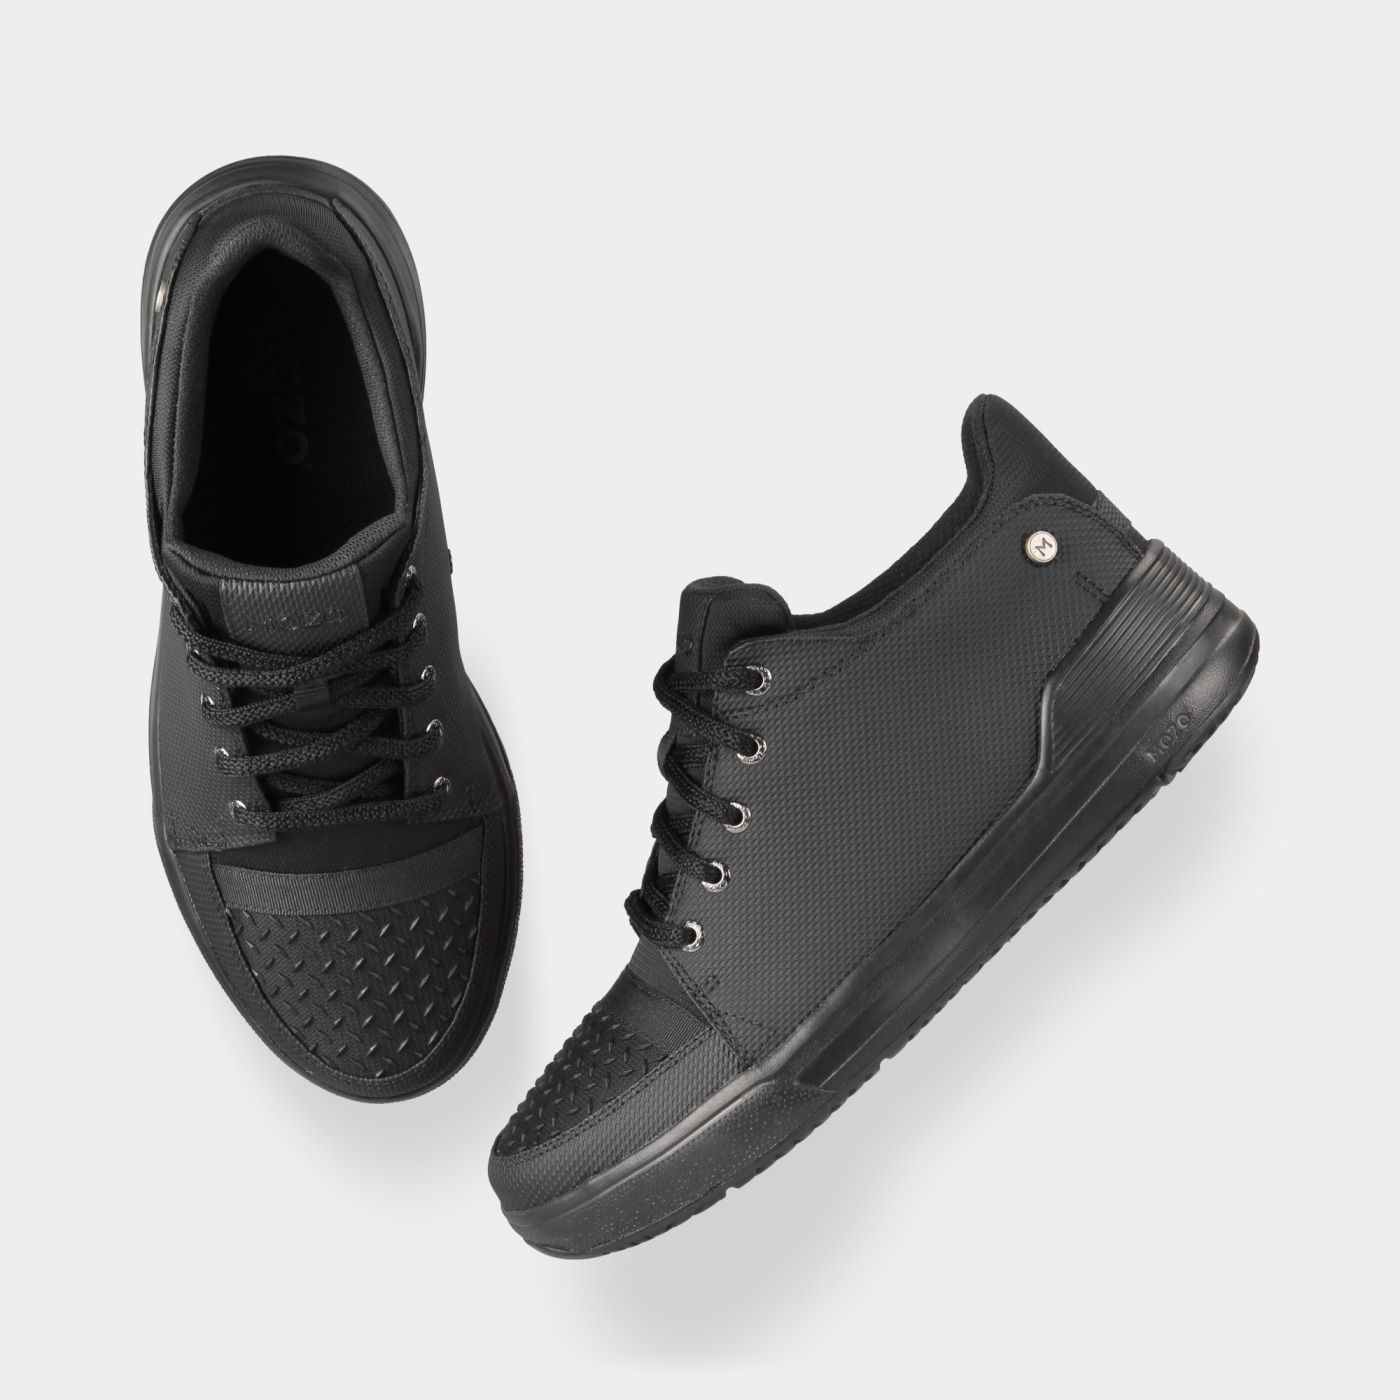 Shoes For Kitchen Workers Outdoor Cabinets Kits Mozo 39s Gallant Is A Slip Resistant Shoe With